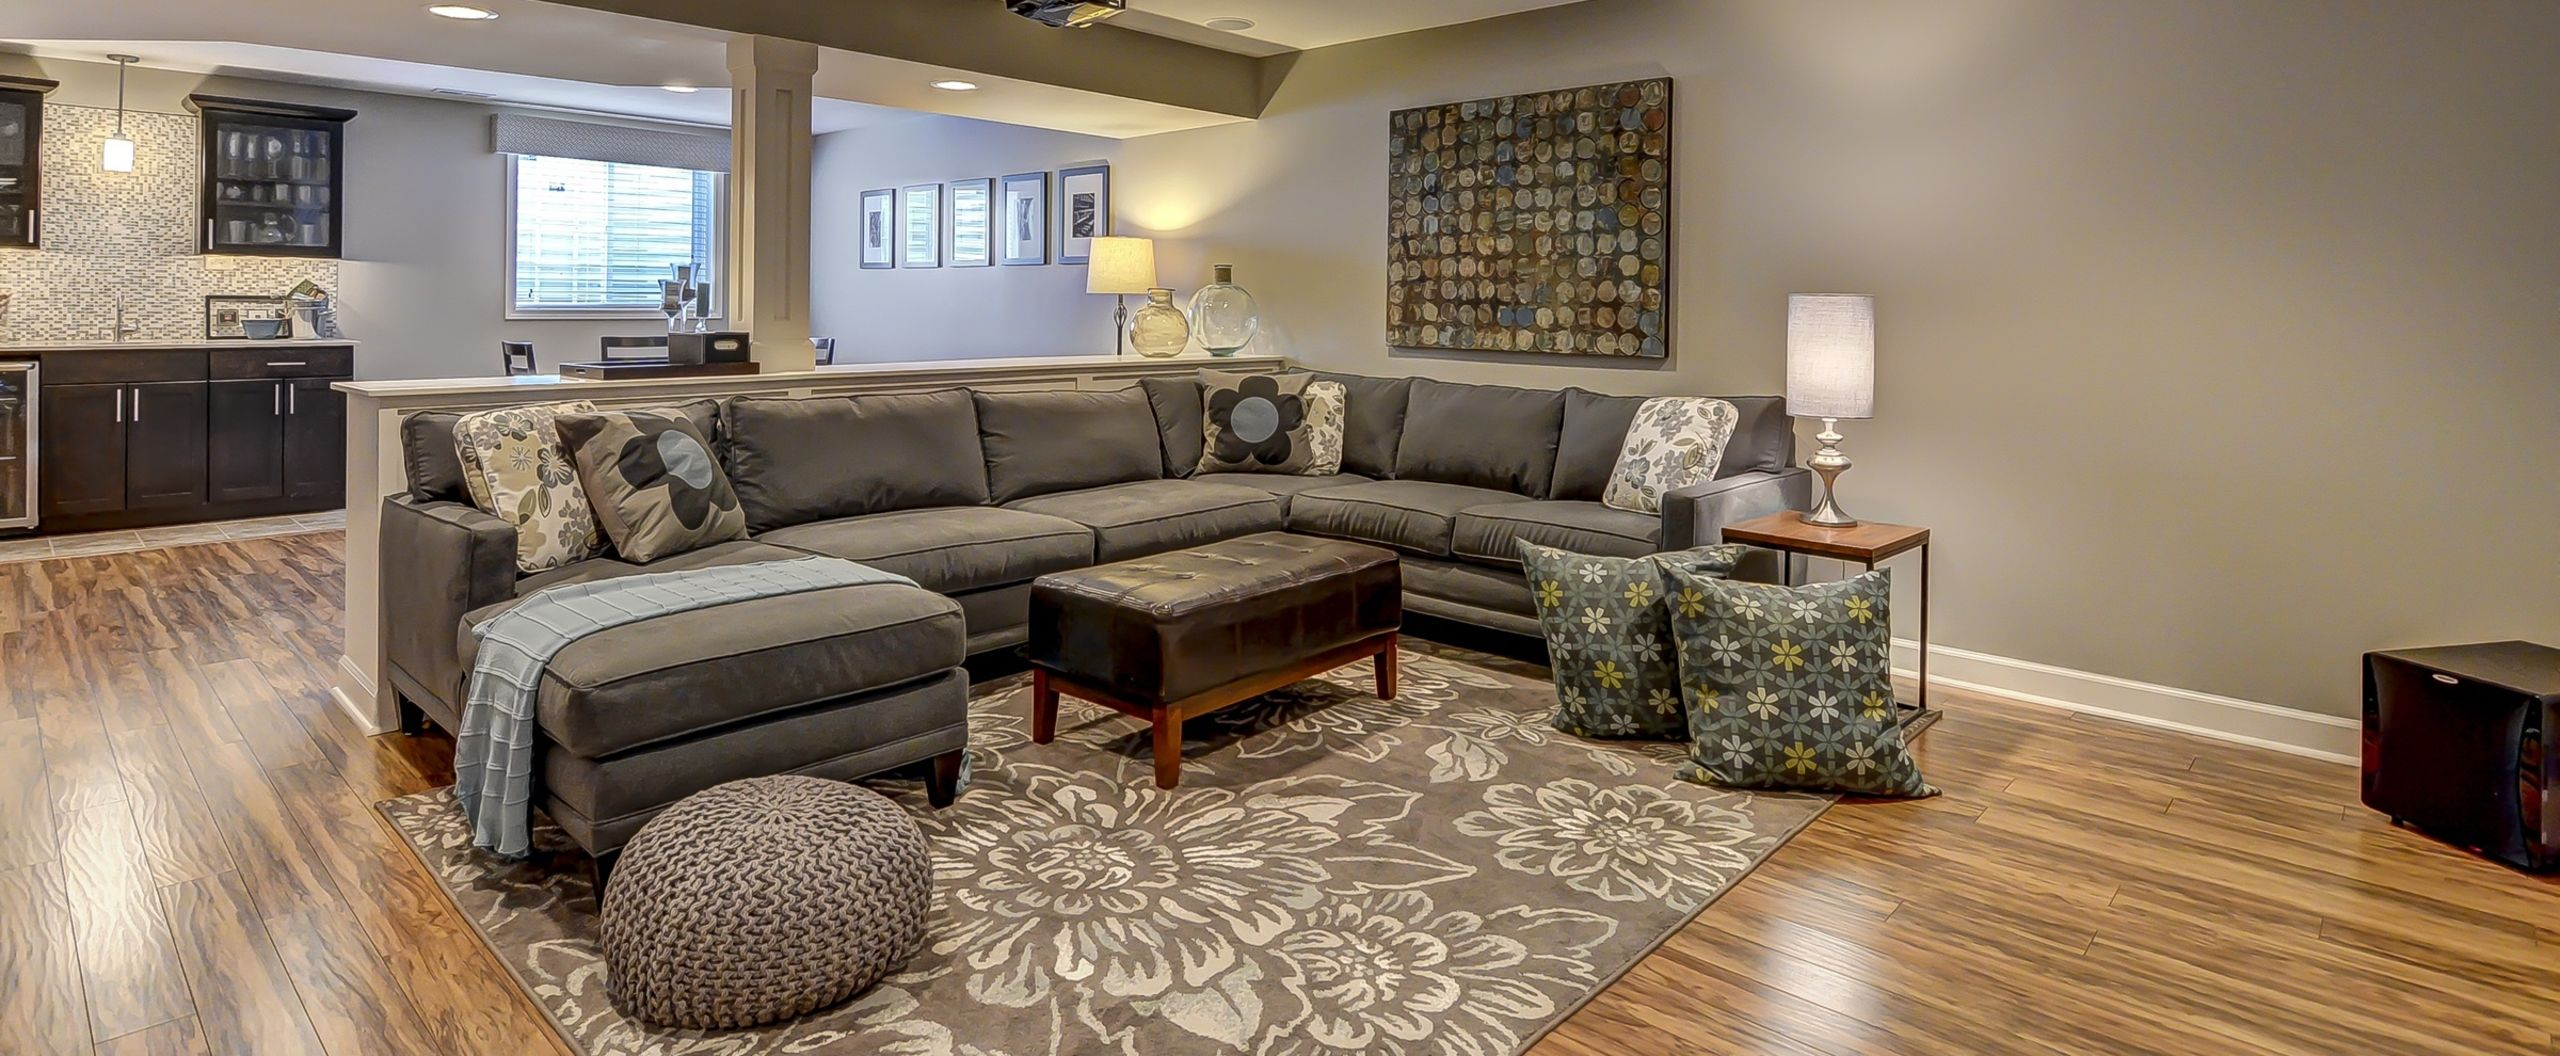 Great Space for Family Living and Entertaining